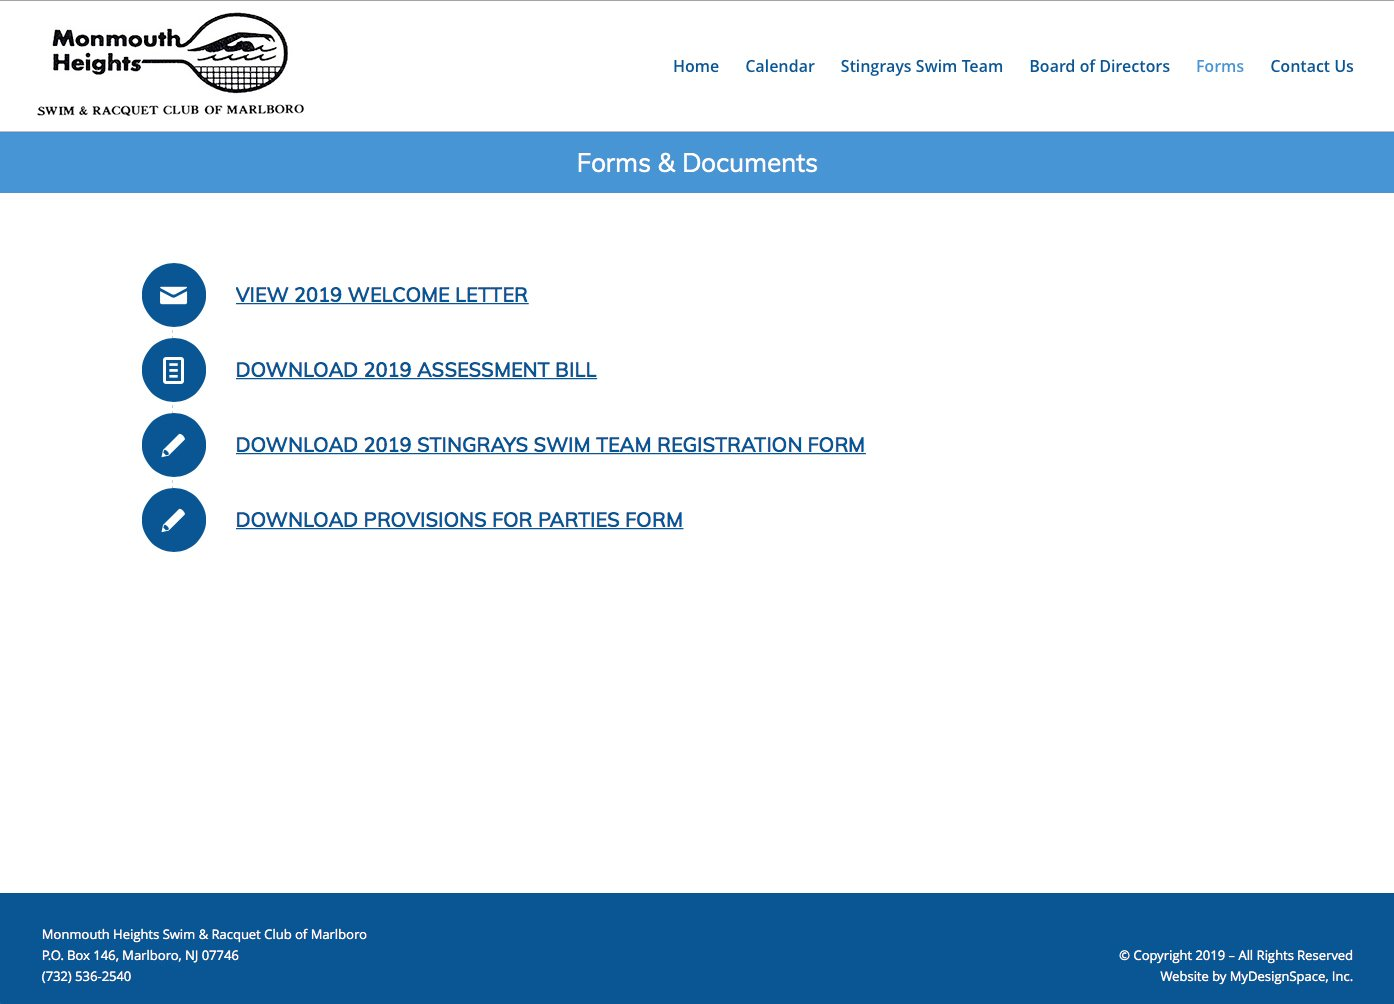 MHSRC Forms Page